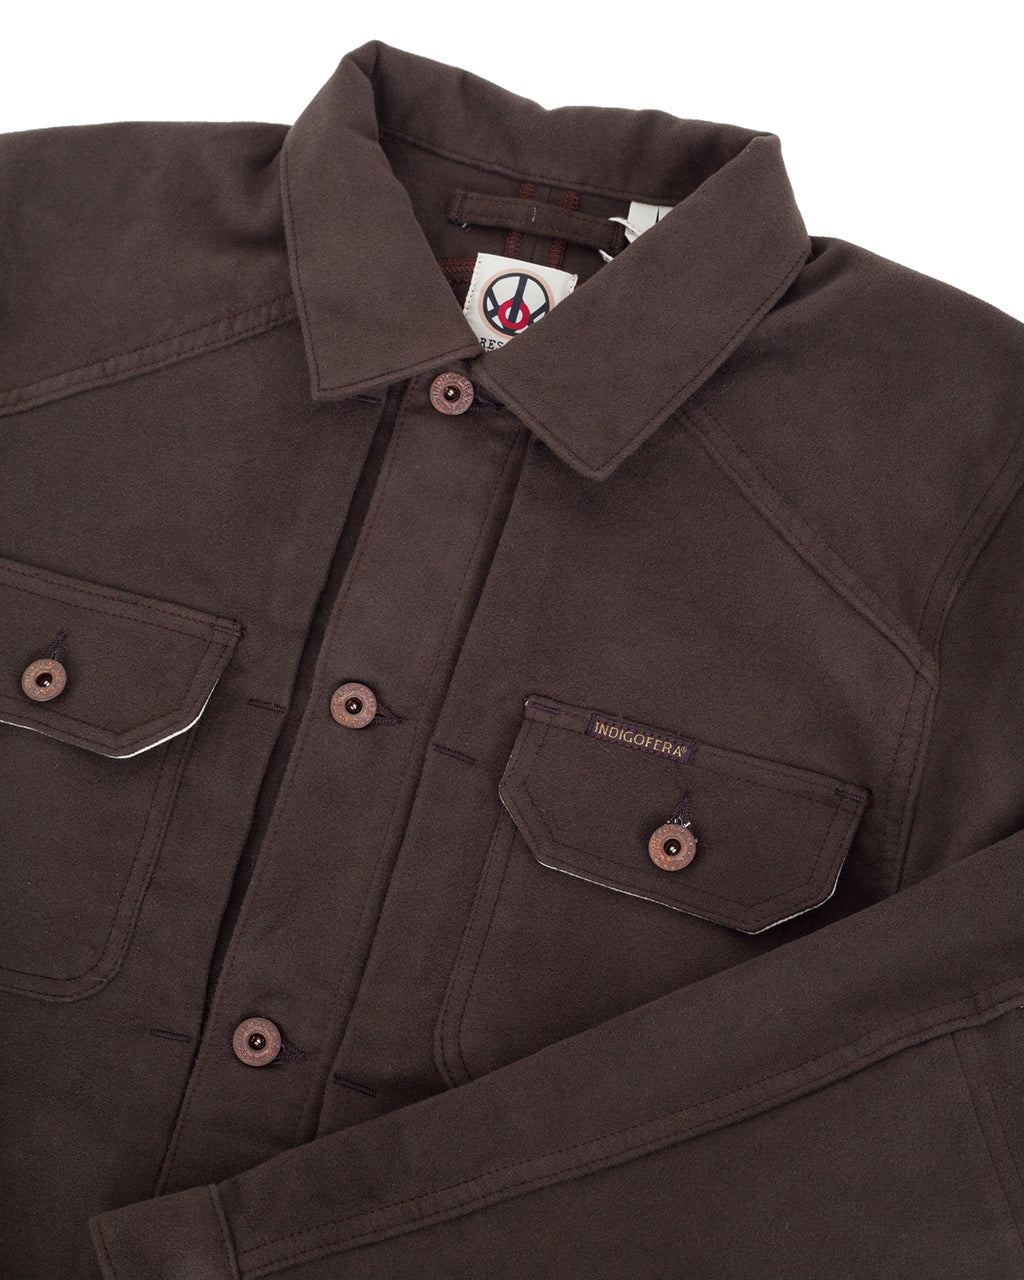 Indigofera Parsons Lodge Jacket, Heavy Moleskin, Brown